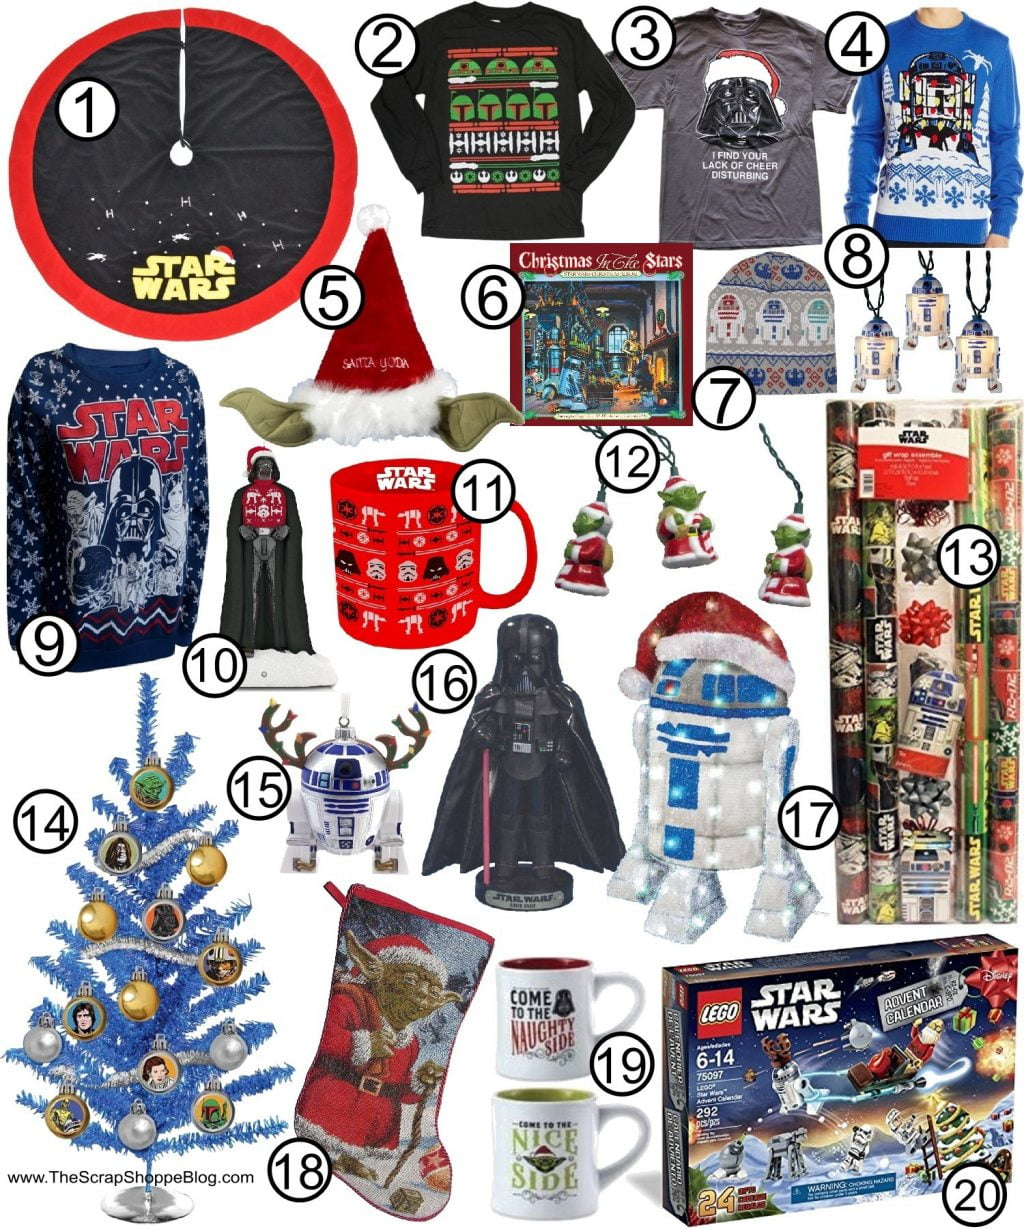 Star Wars Gift Guide - The Scrap Shoppe